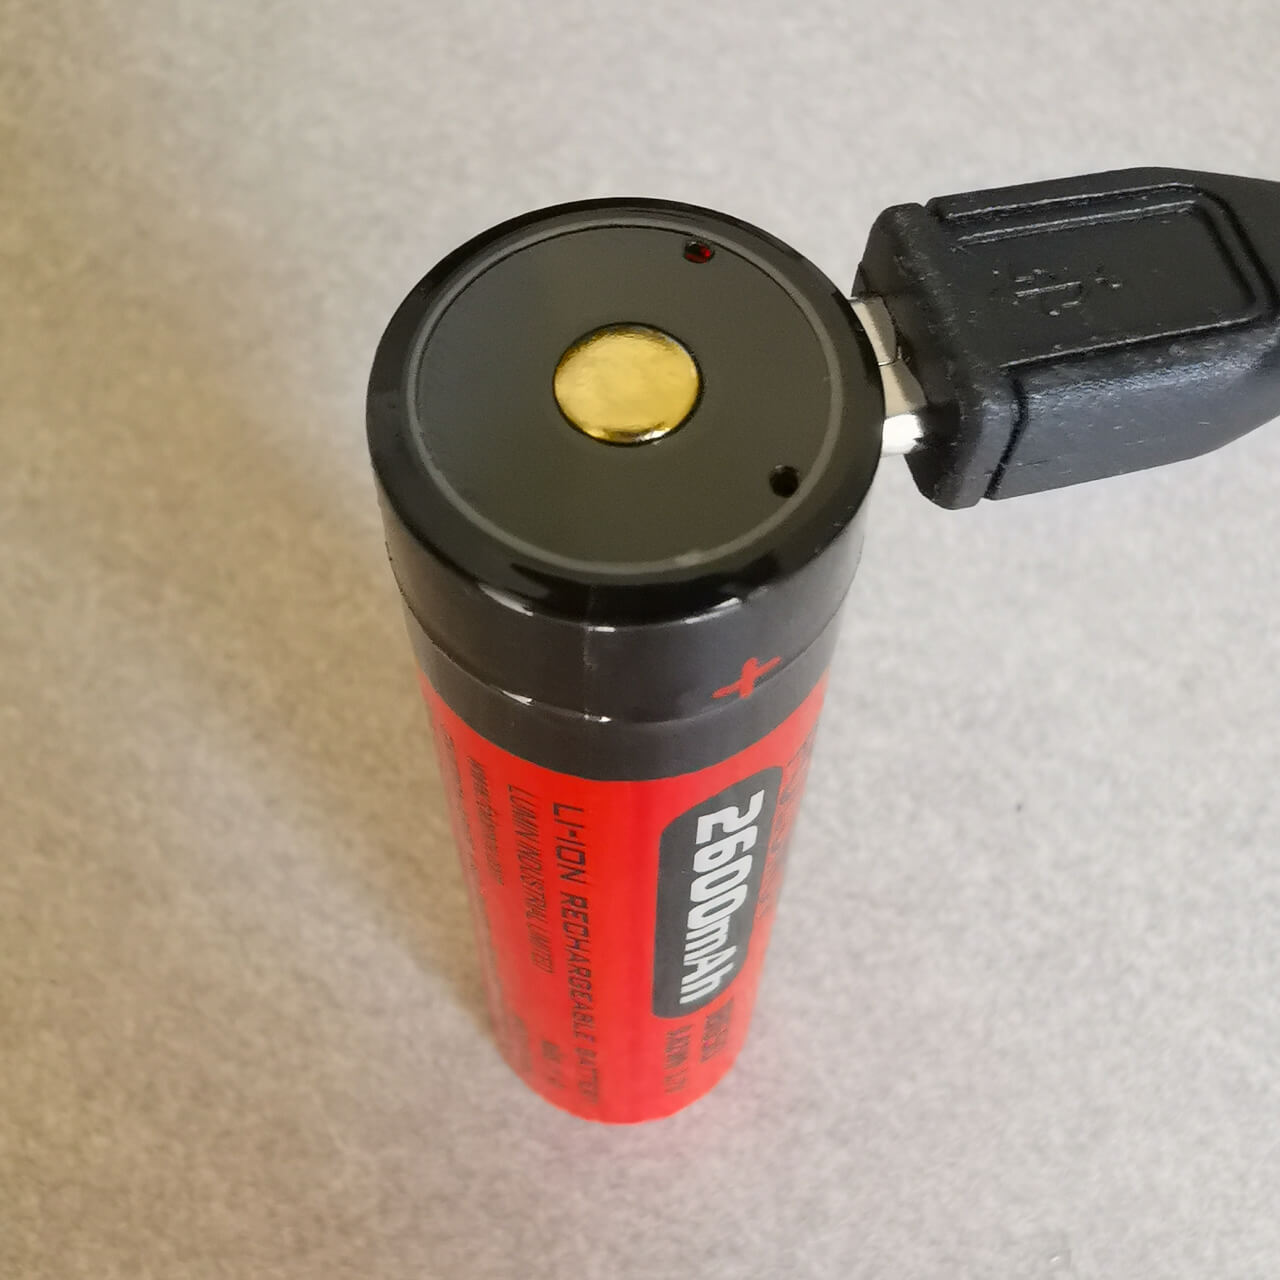 18650 battery with USB charging